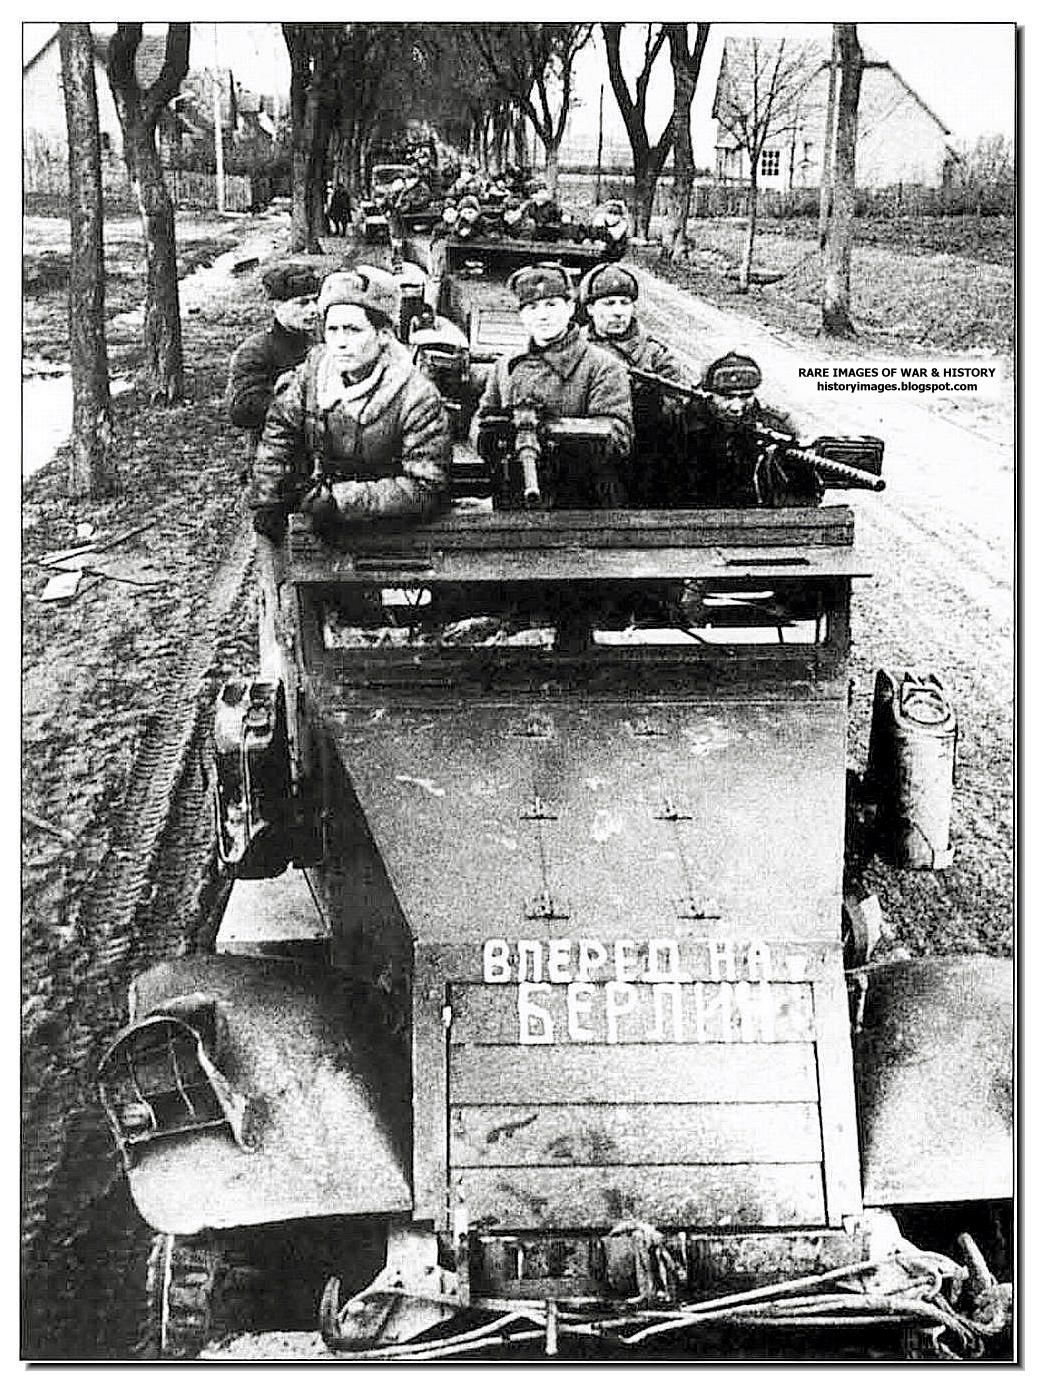 soviet-armored-vehicles-going-to-berlin-1945.jpg (1042×1388)